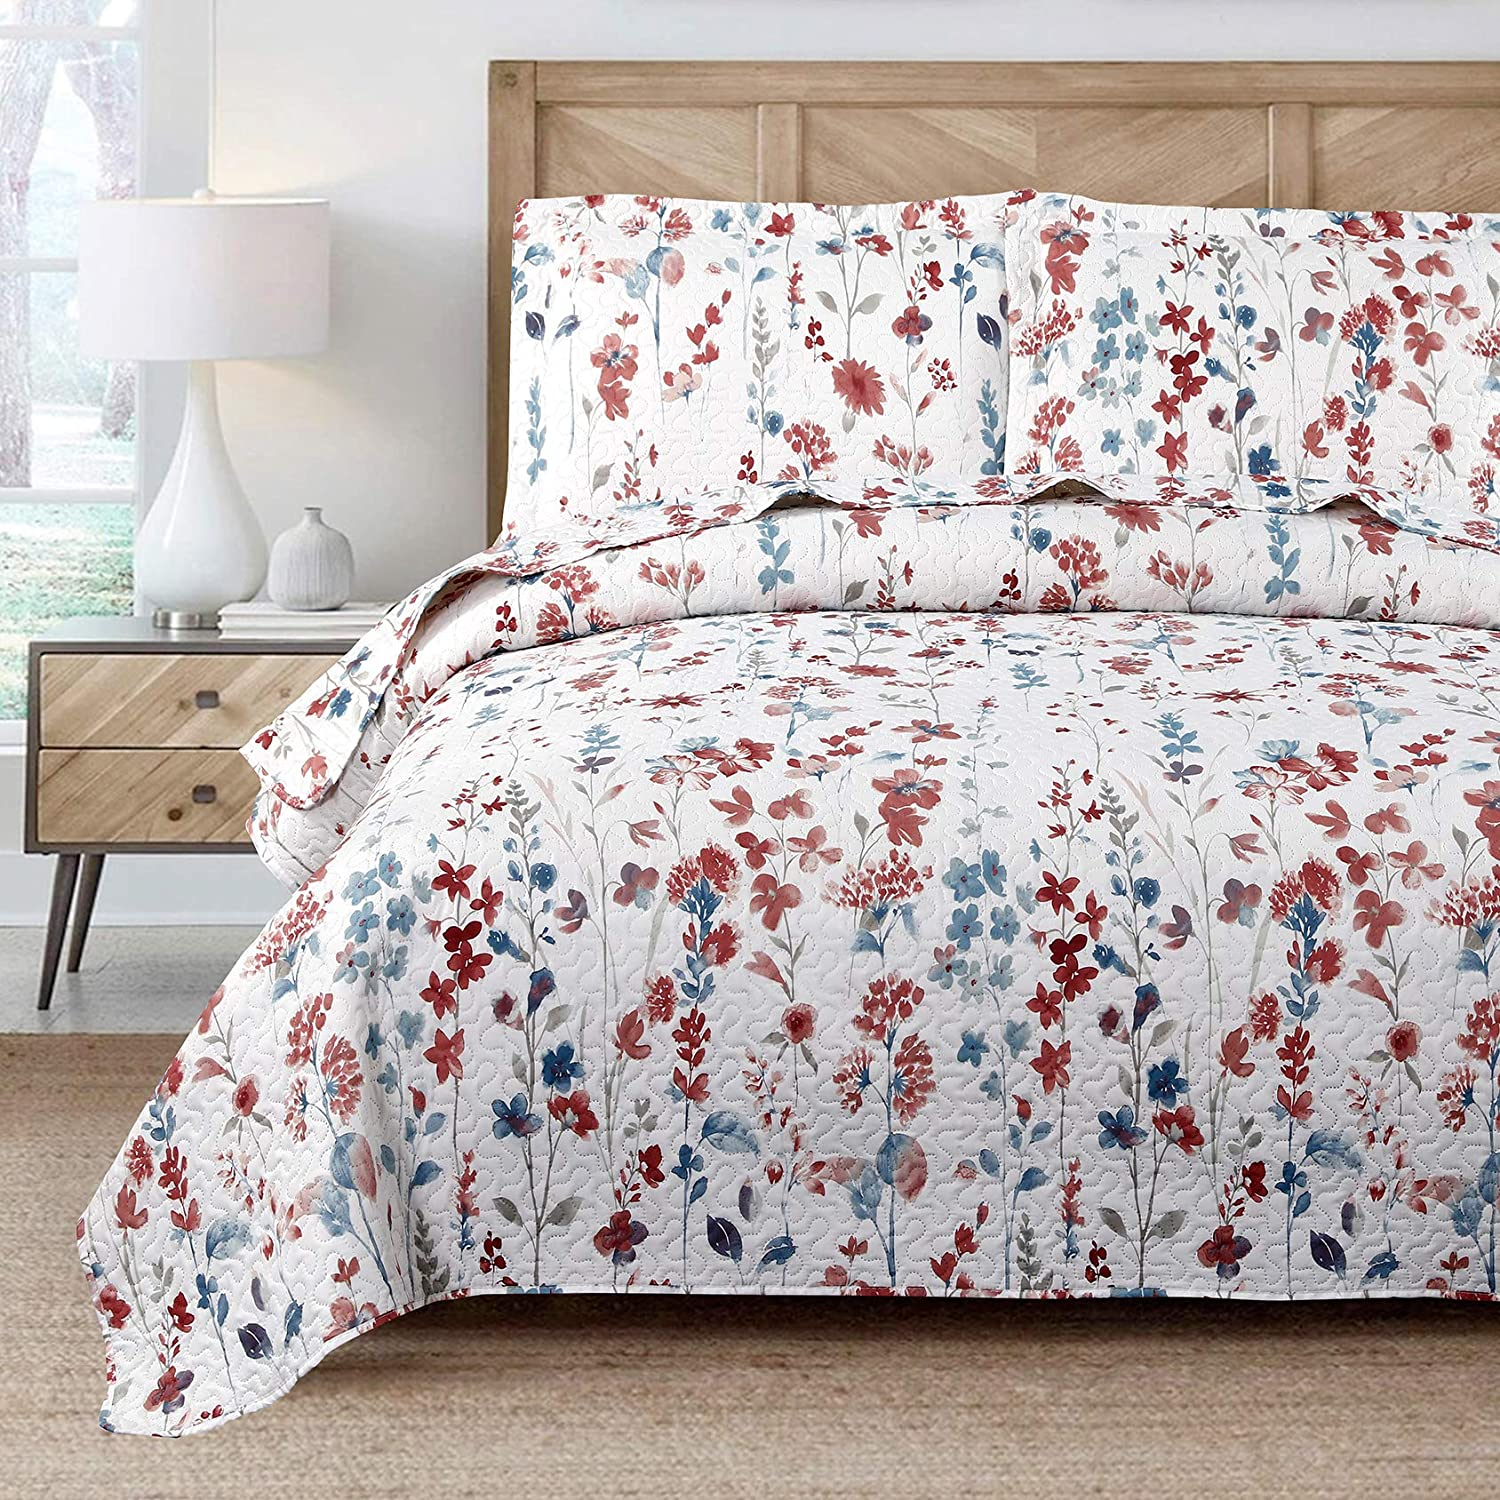 Ranking TOP19 Lilac Quilt Bedspread Queen Full Size Coverlet Set White Red Max 75% OFF Lil